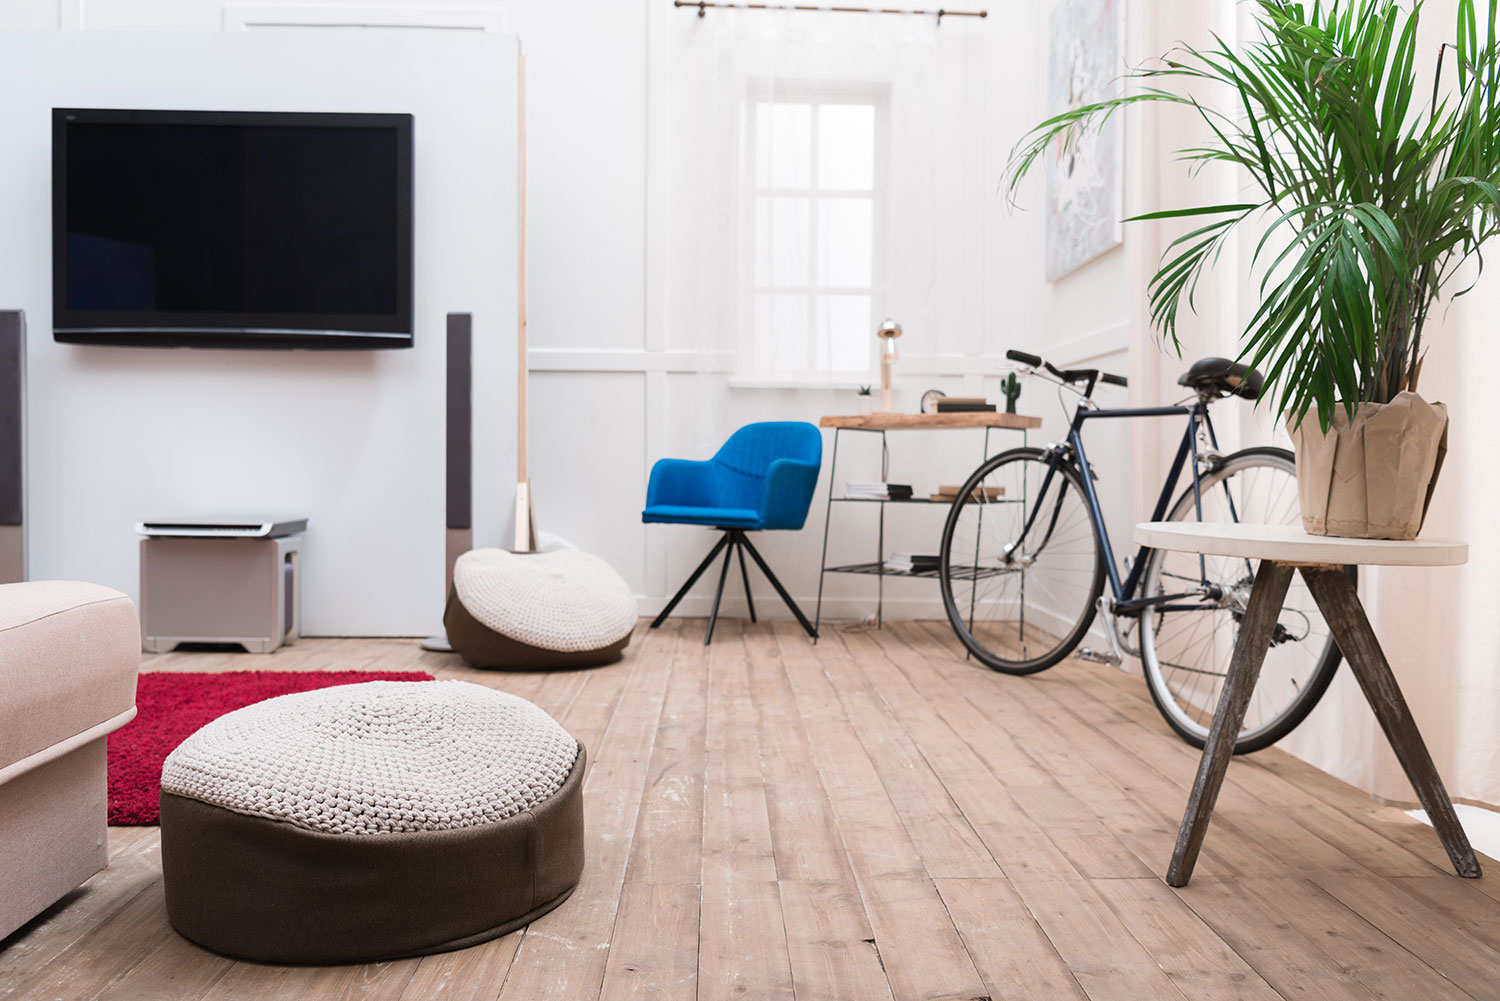 How to Mount TV on the wall - LA SMART HOME